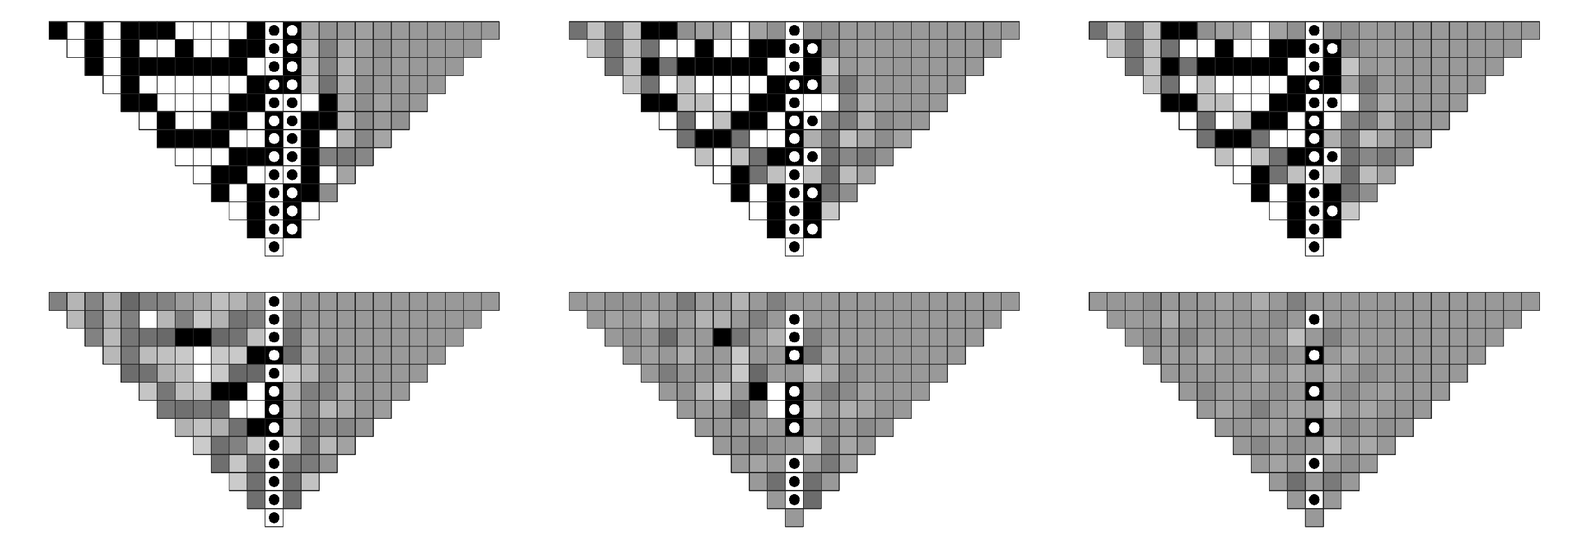 Patterns generated by rule 30